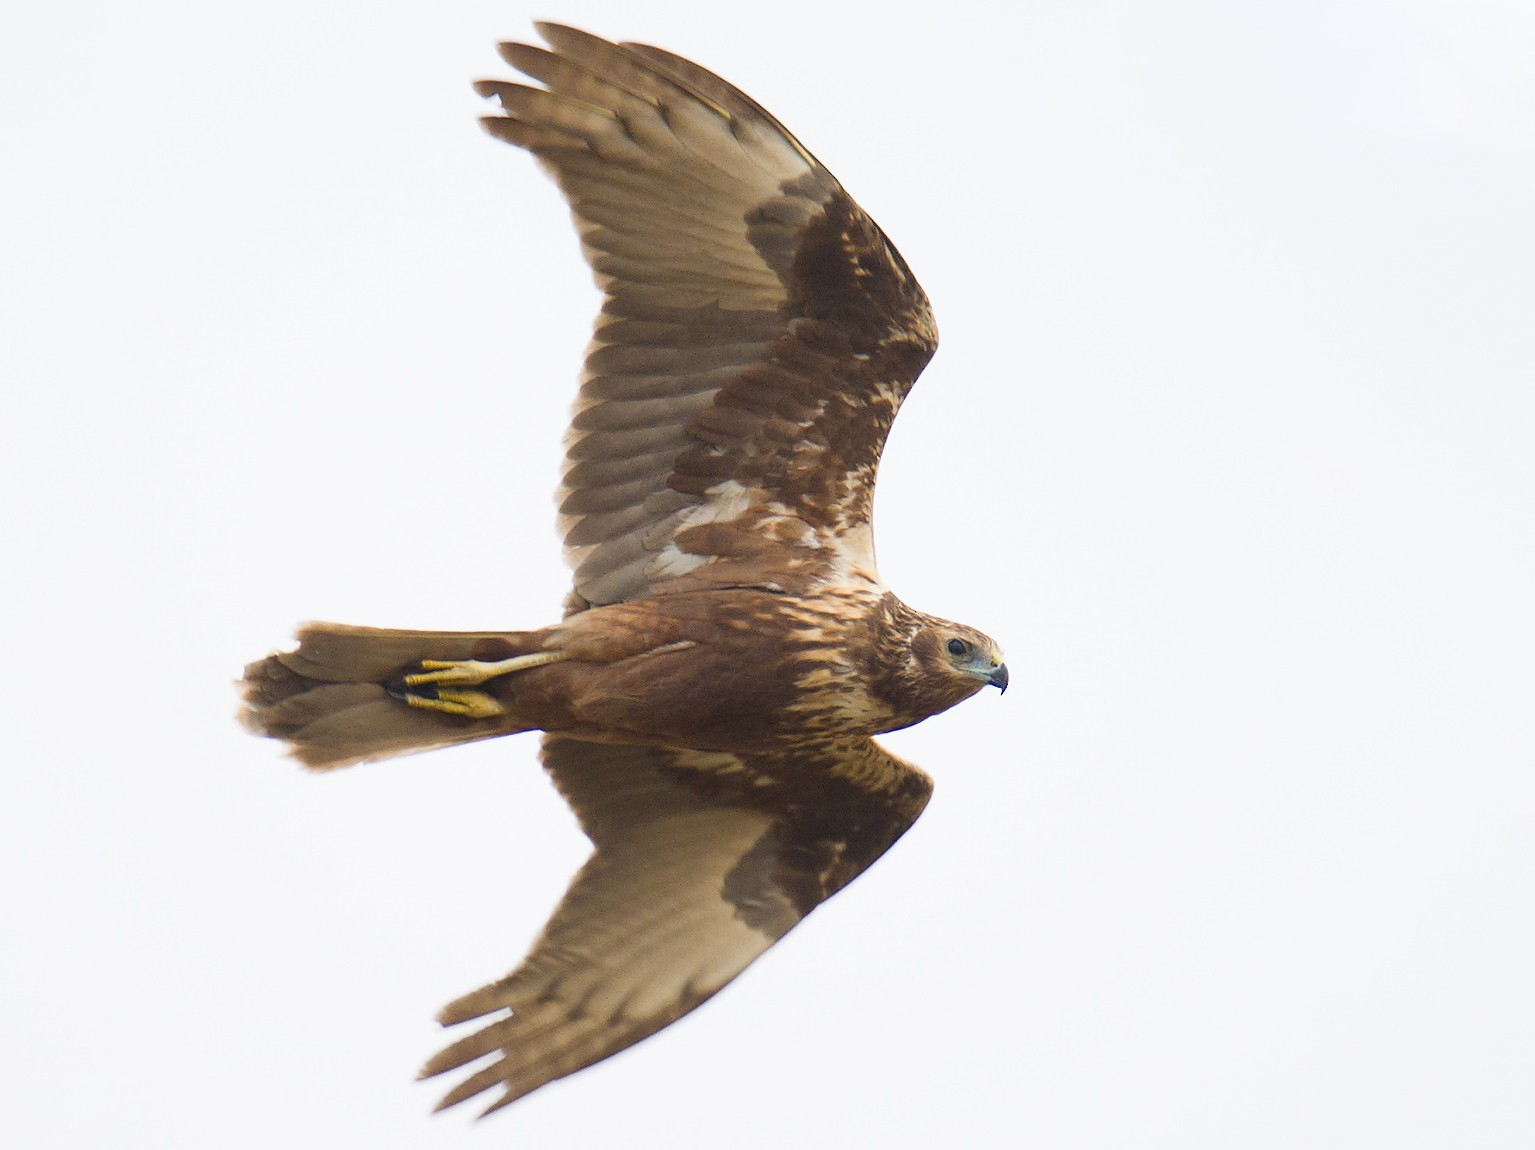 Eastern Marsh-Harrier - Craig Brelsford